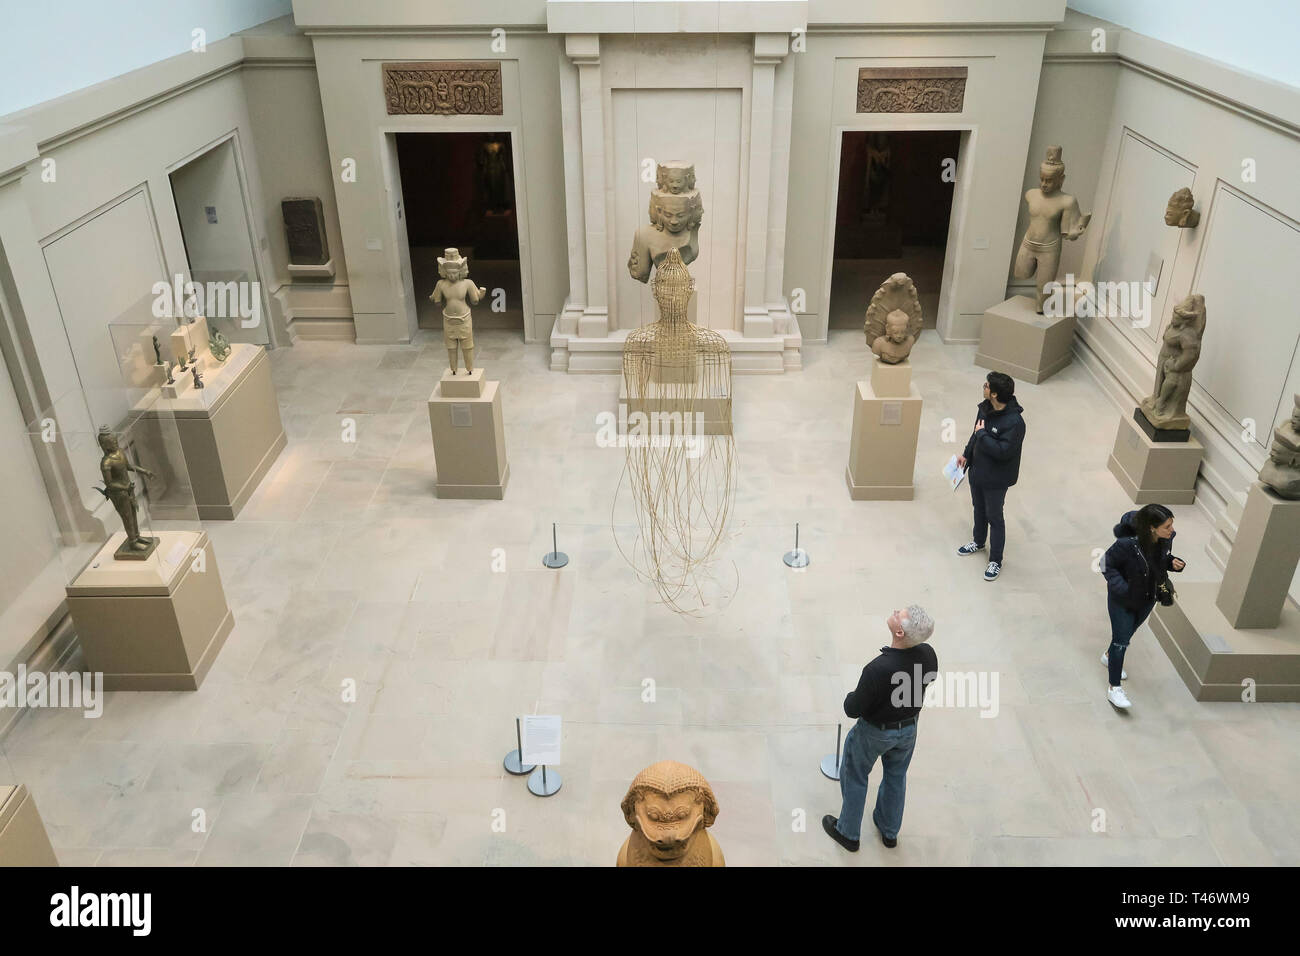 Asian Art Wing at the Metropolitan Museum of Art in New York City, USA - Stock Image